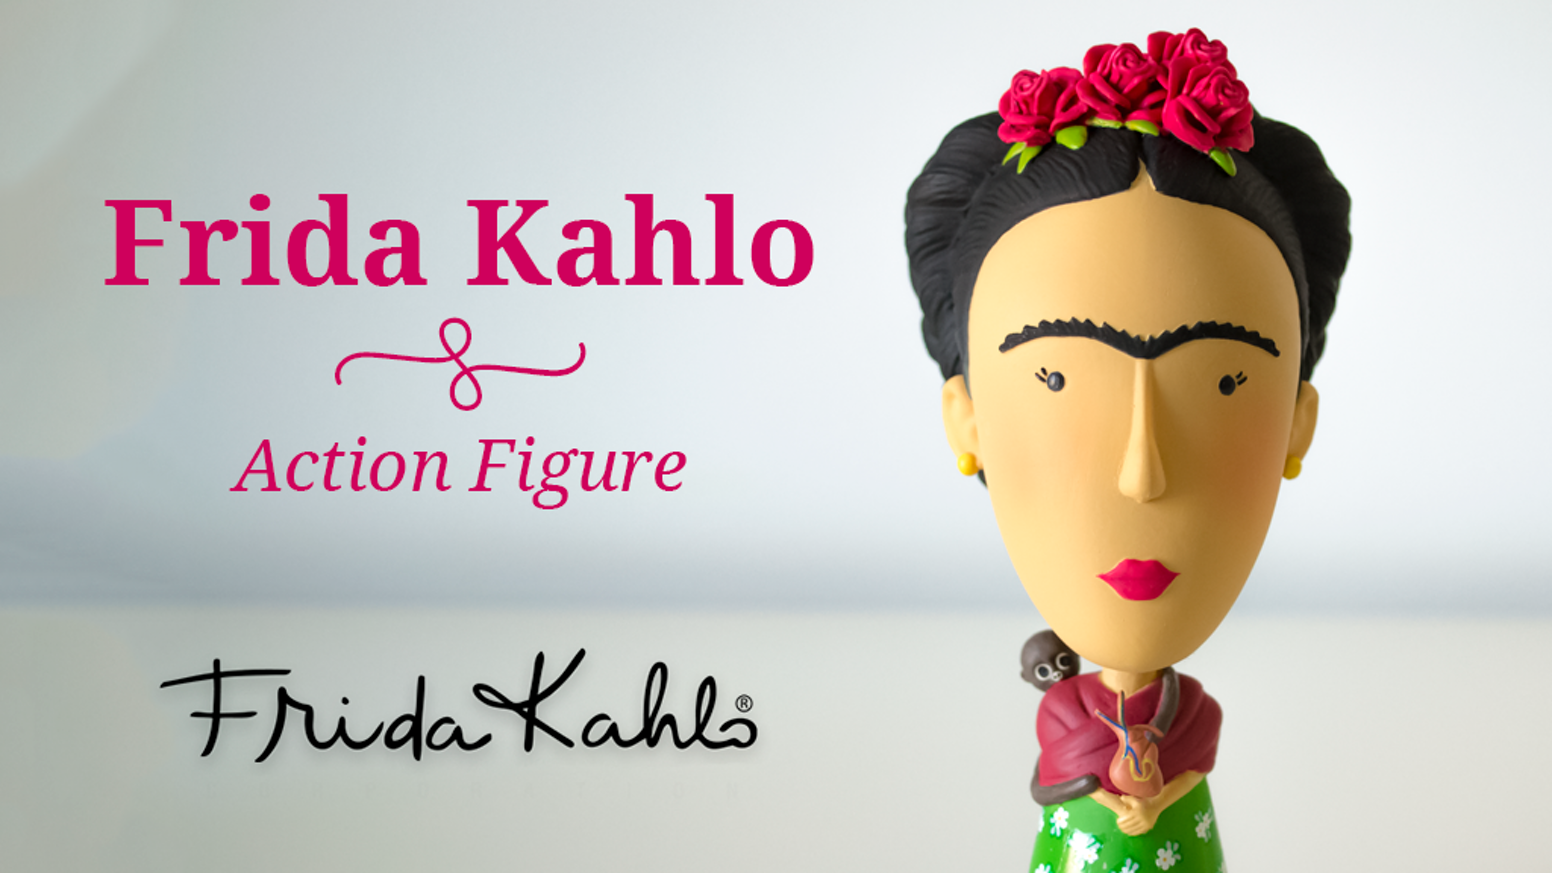 The Frida Kahlo action figure is happening! Want yours?